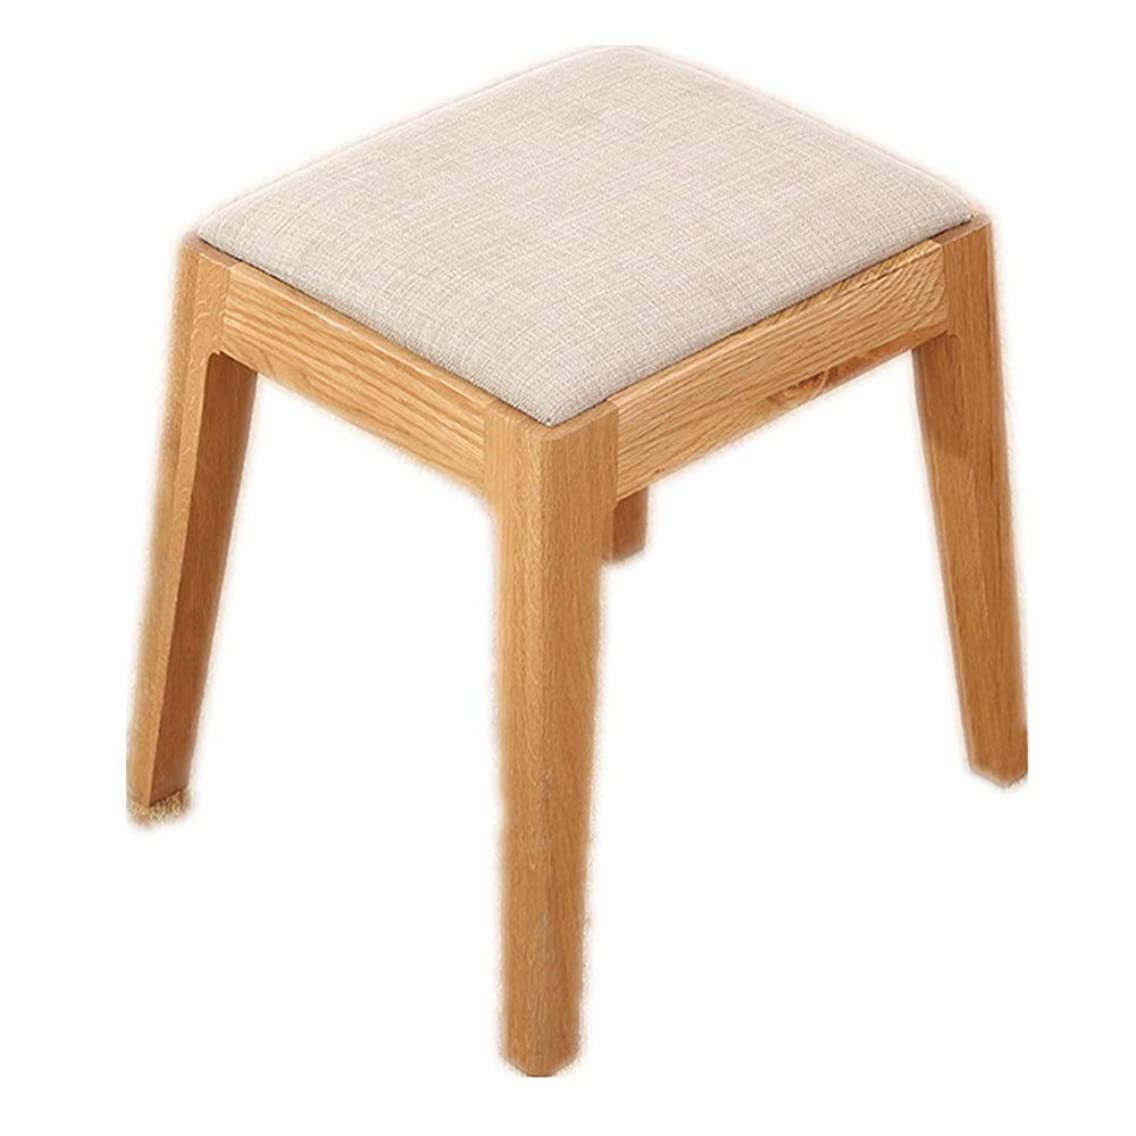 Upholstered Padded stools Family Low Square Stool Thickening Table Bench Children's Wooden Chair Or Adult Wooden Stool stools Home Living Room Bedroom ( Color : Main color , Size : 24.529.540cm )